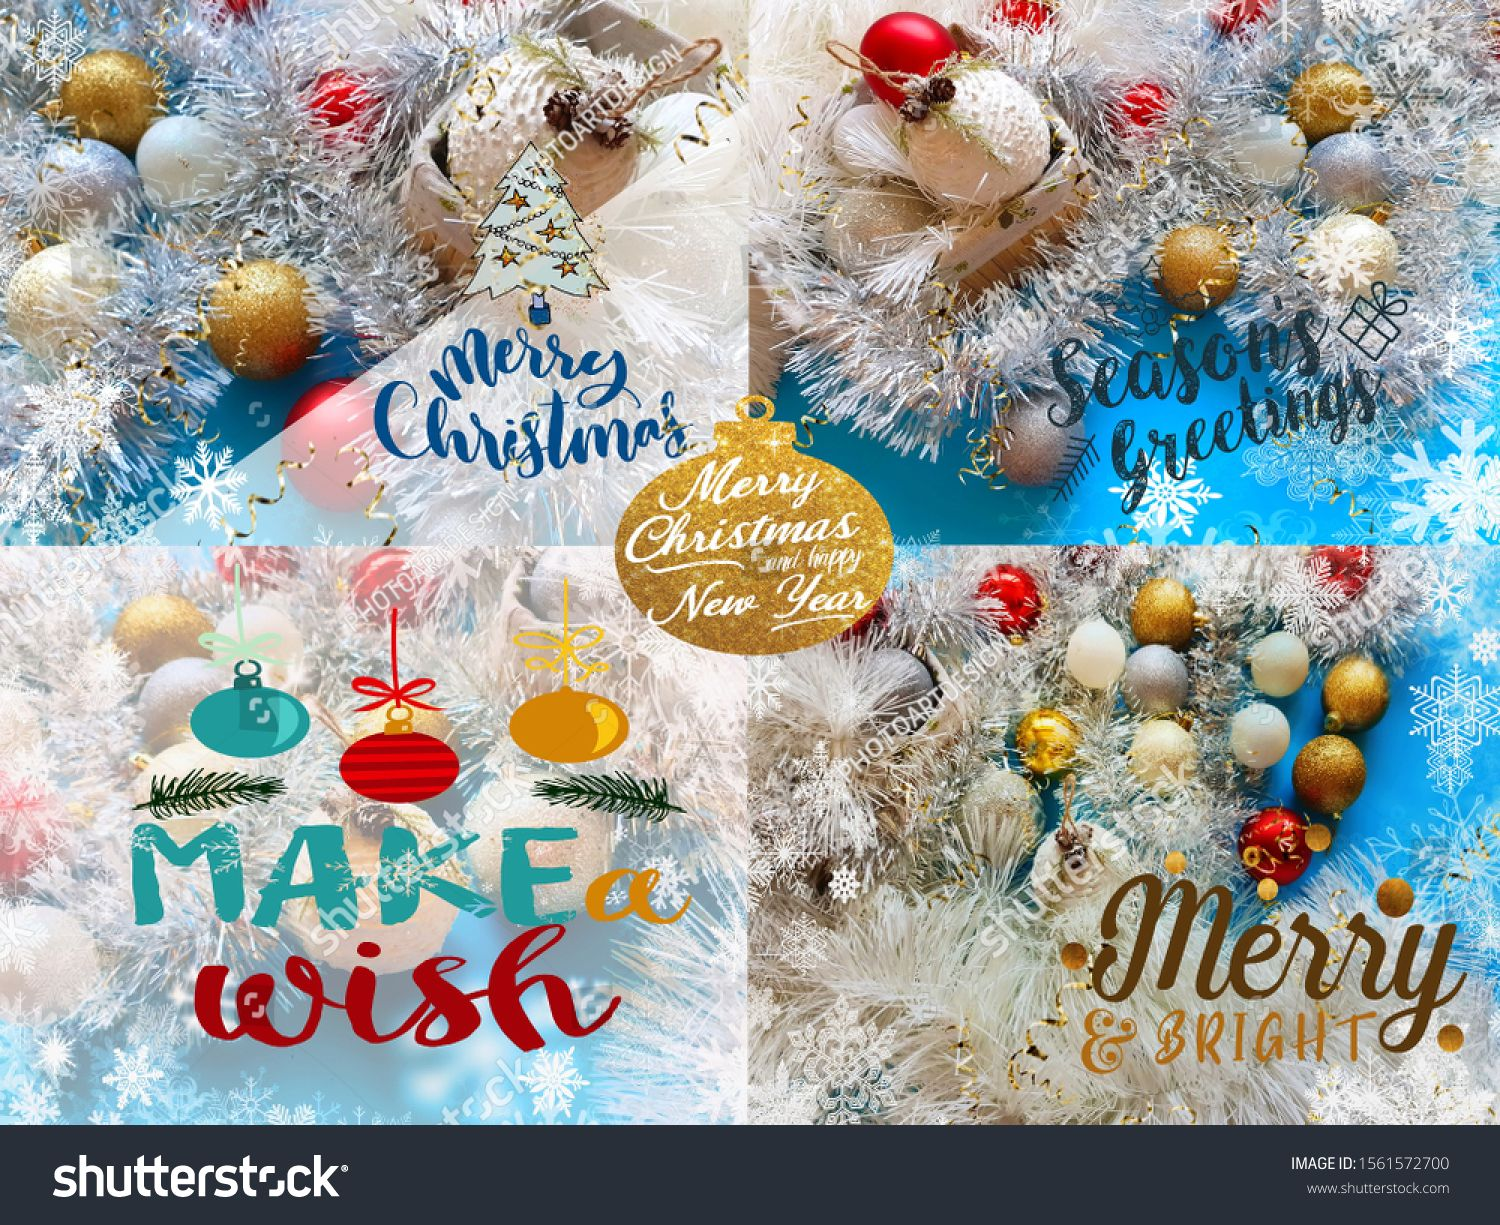 White Snowflakes And Red Gold White Christmas Tree Balls On Blue Background Greetings Card Colla Christmas Collage Christmas Stock Photos Gold Tree Decorations